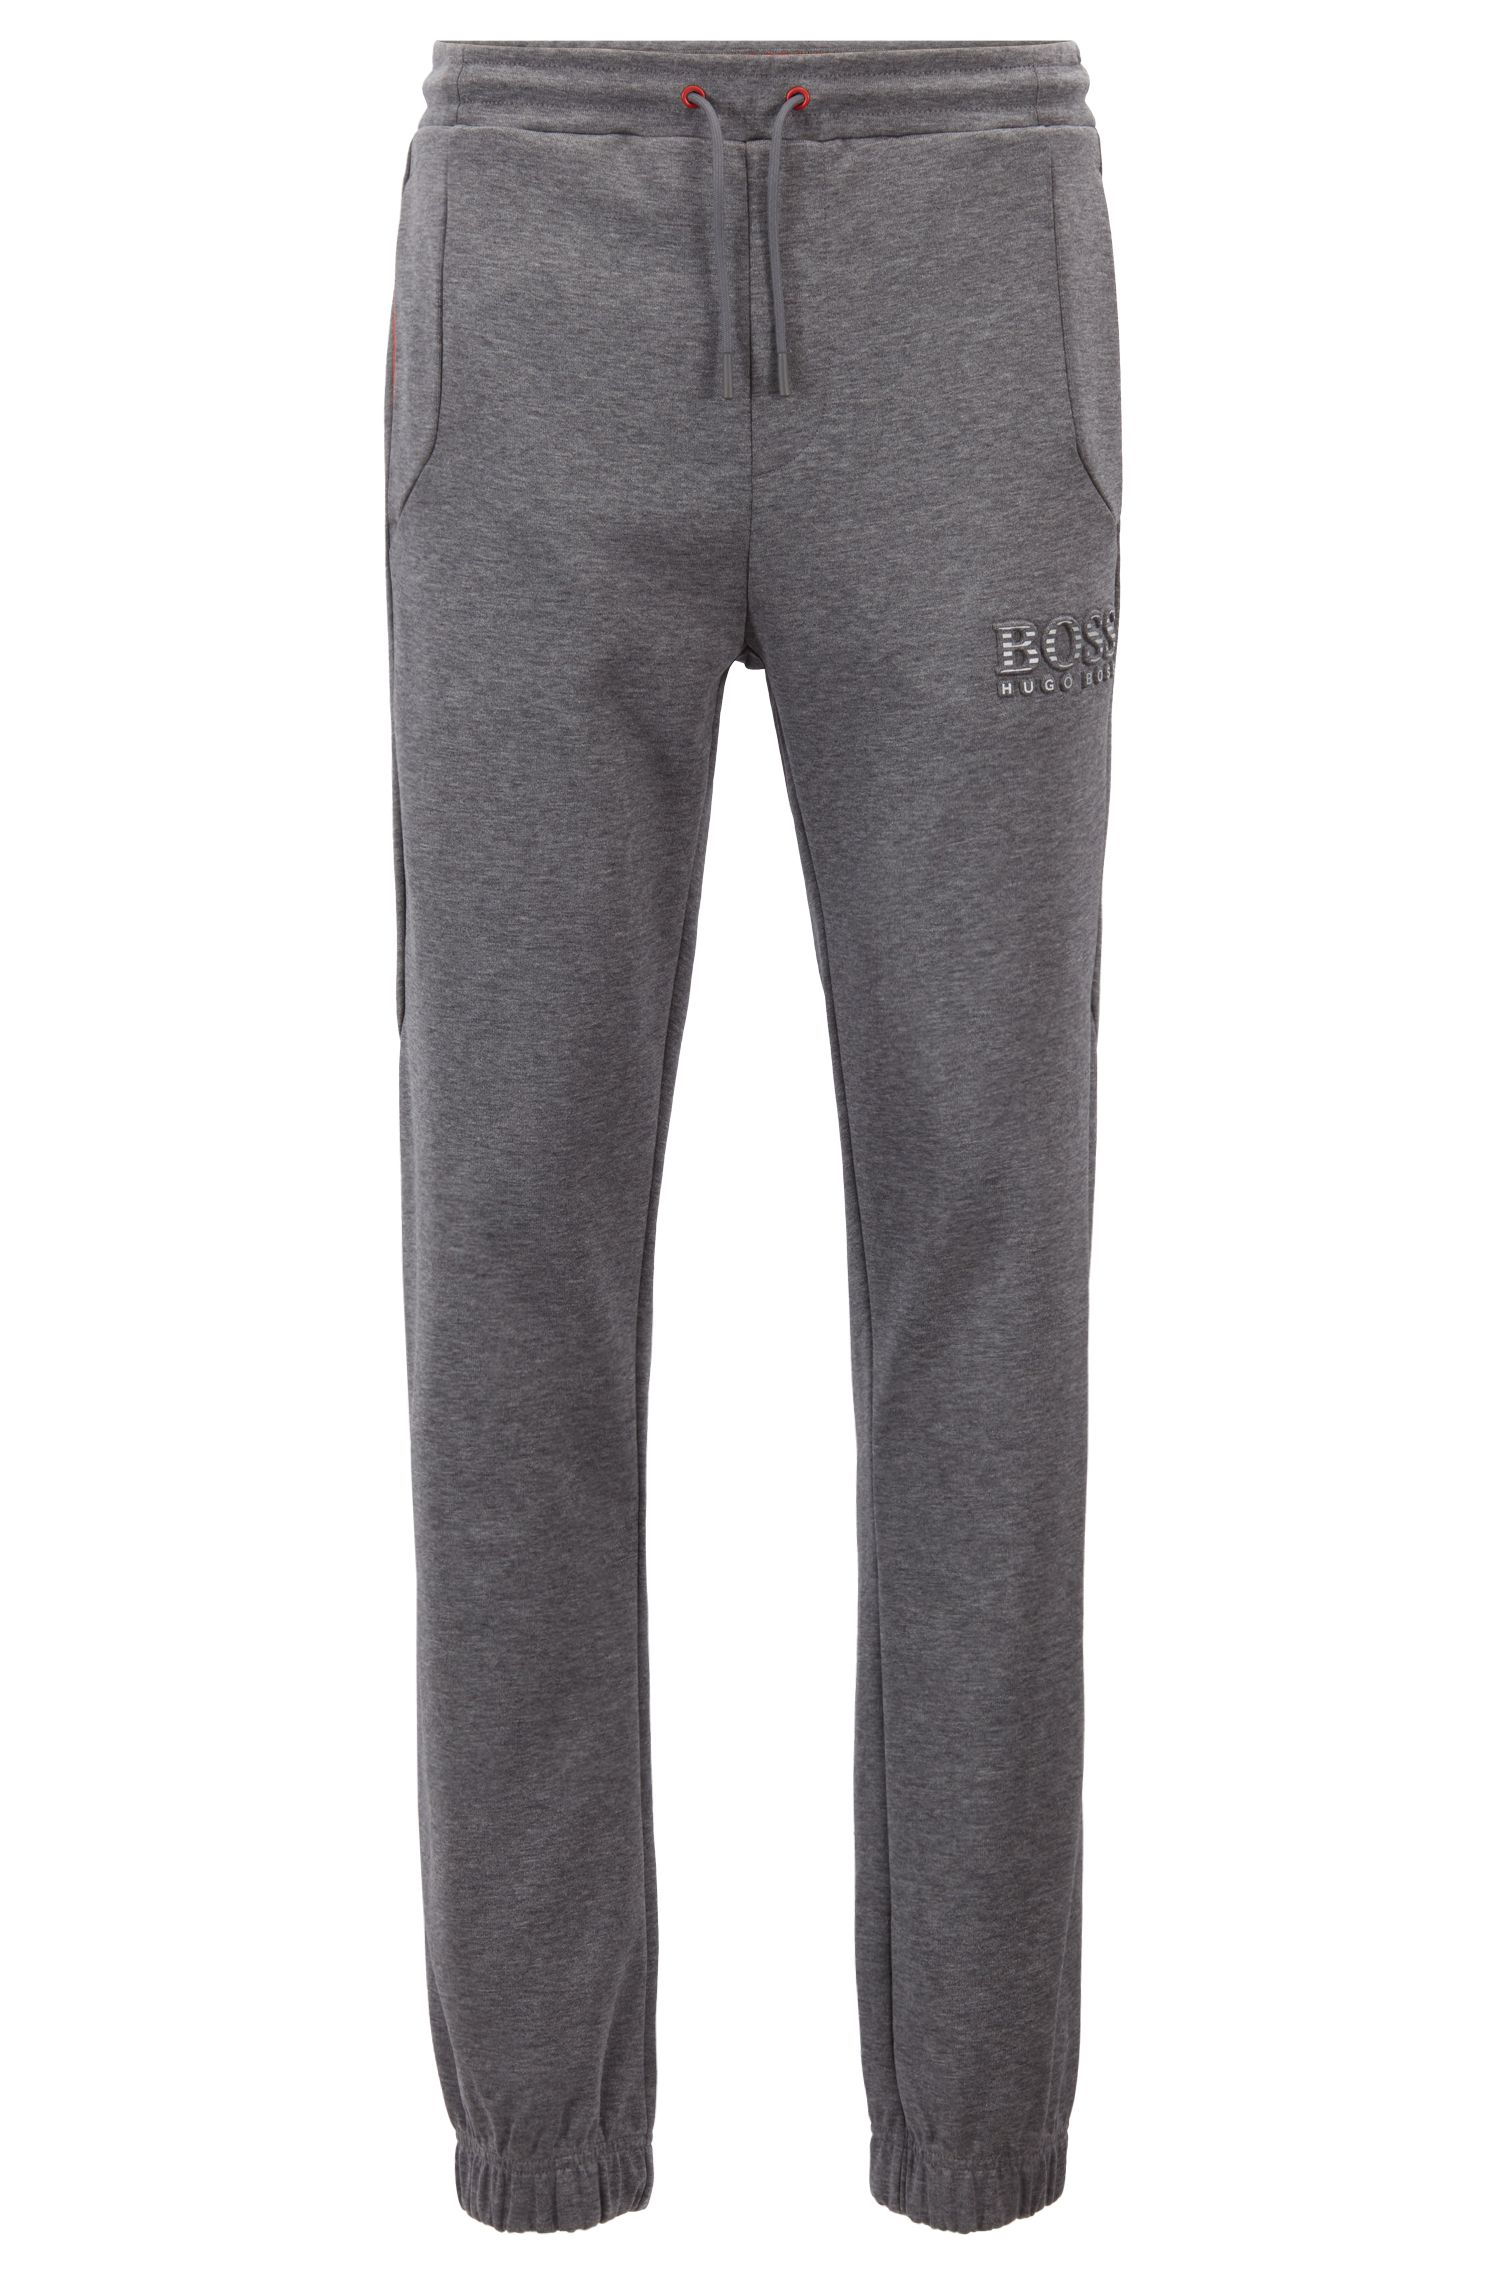 Slim-fit joggingbroek met reflecterende details, Grijs